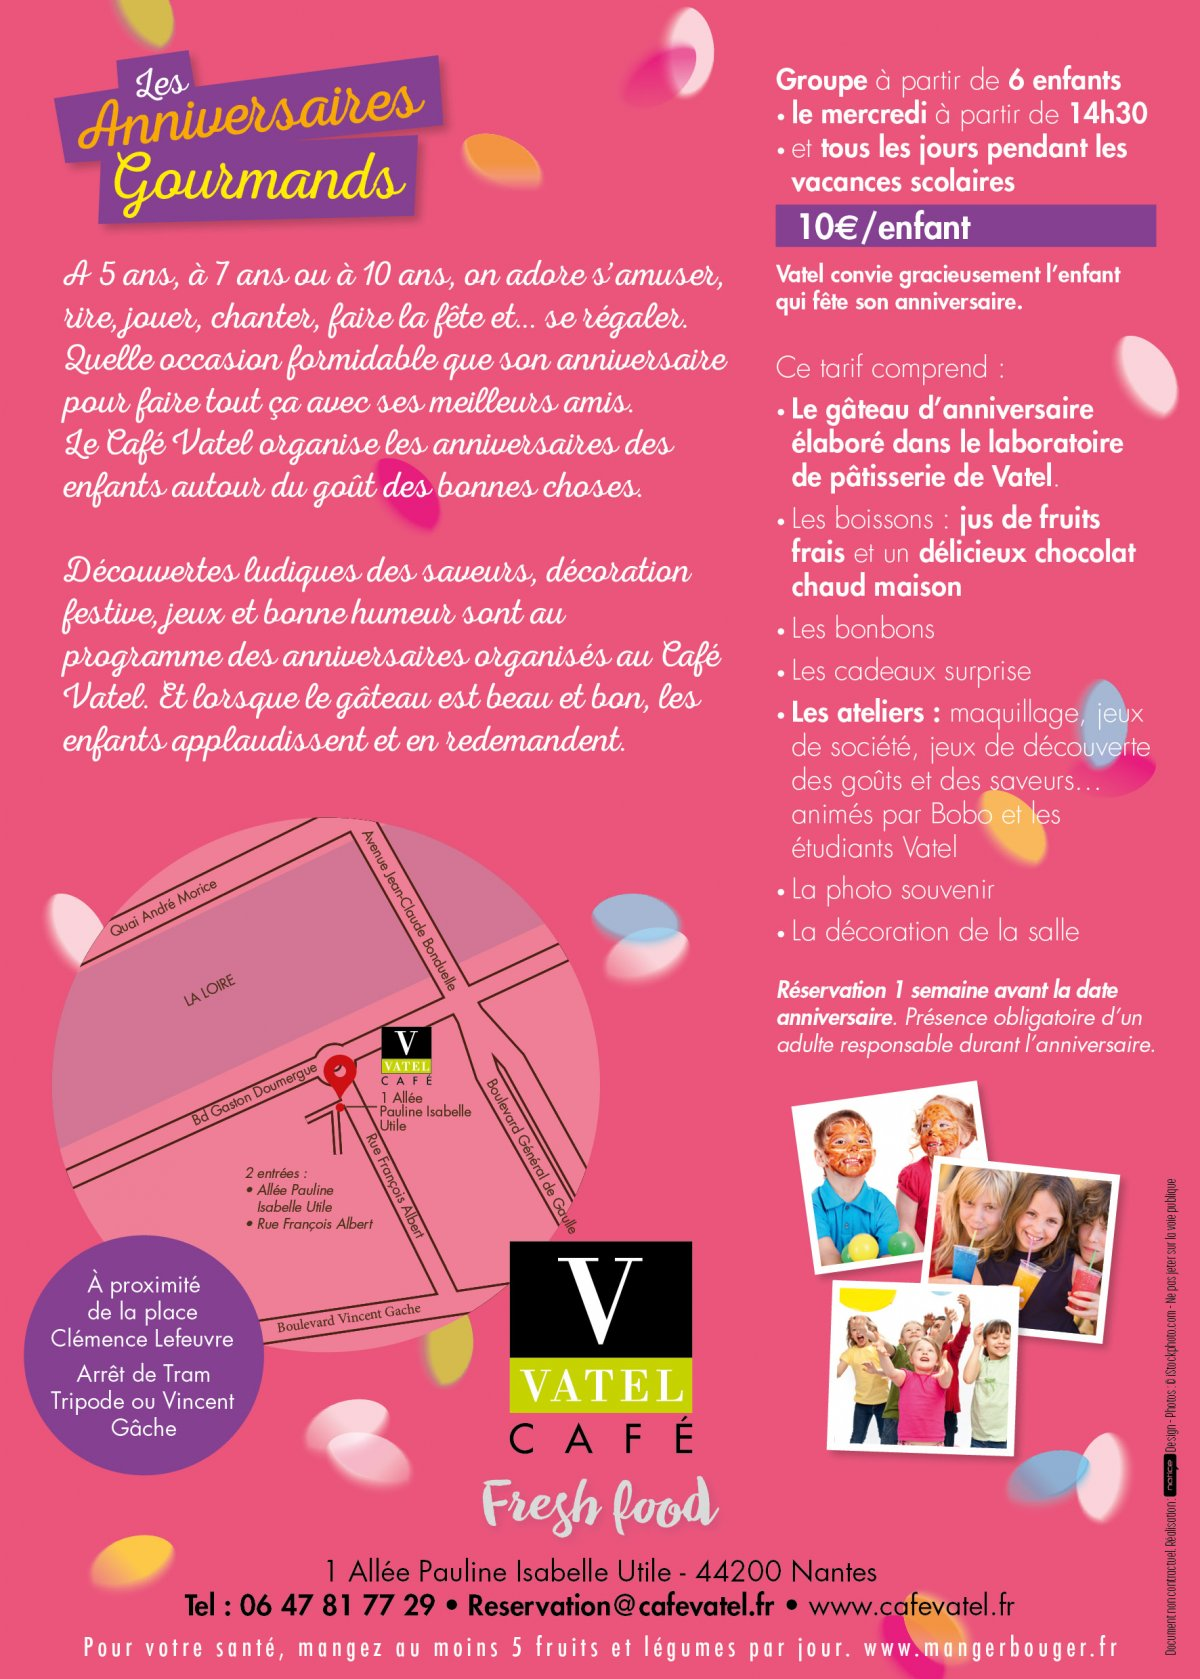 Anniversaires gourmands - Cafe Vatel